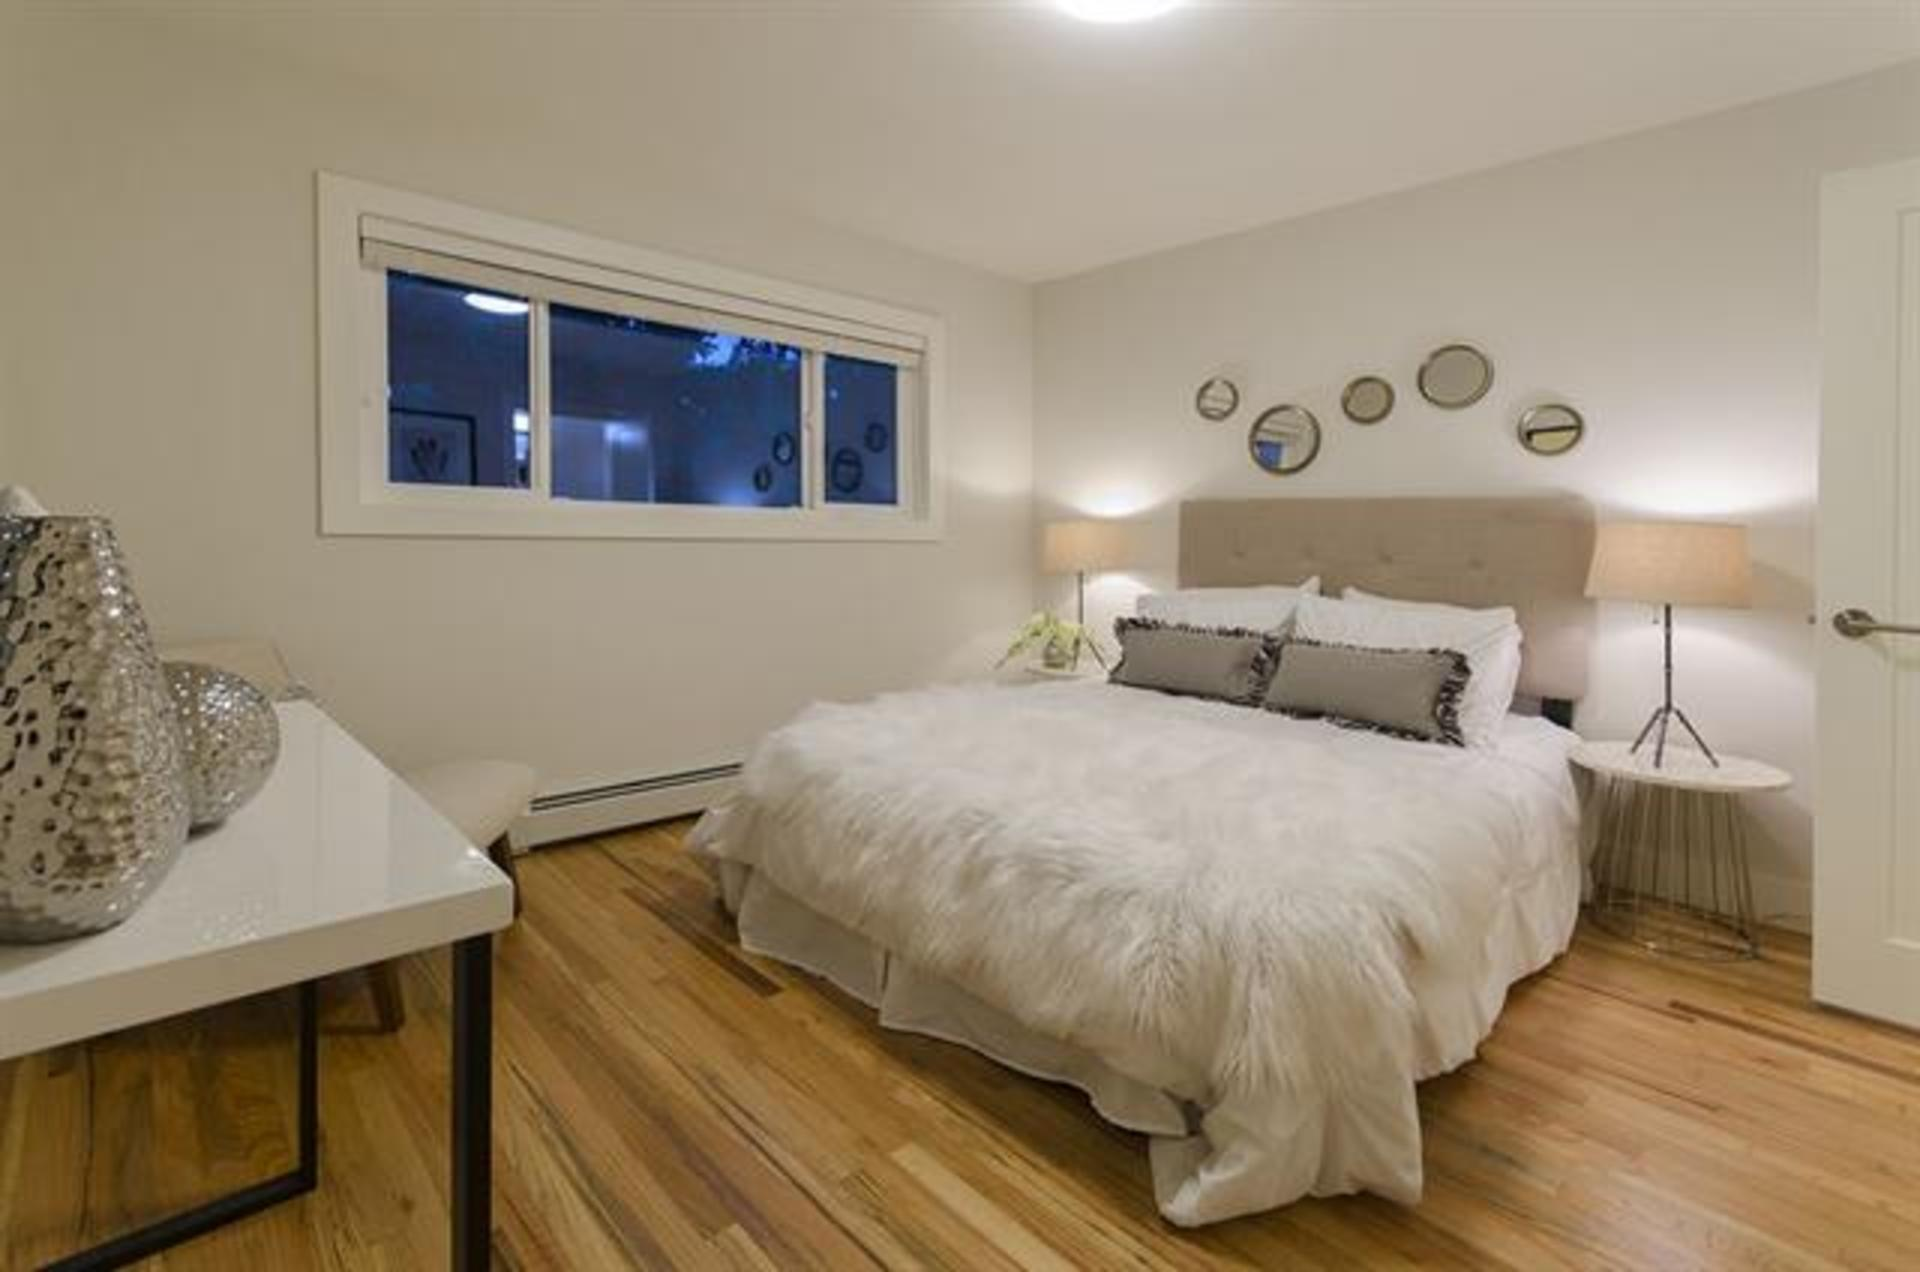 262114448-10 at 5922 Ross Street, Knight, Vancouver East